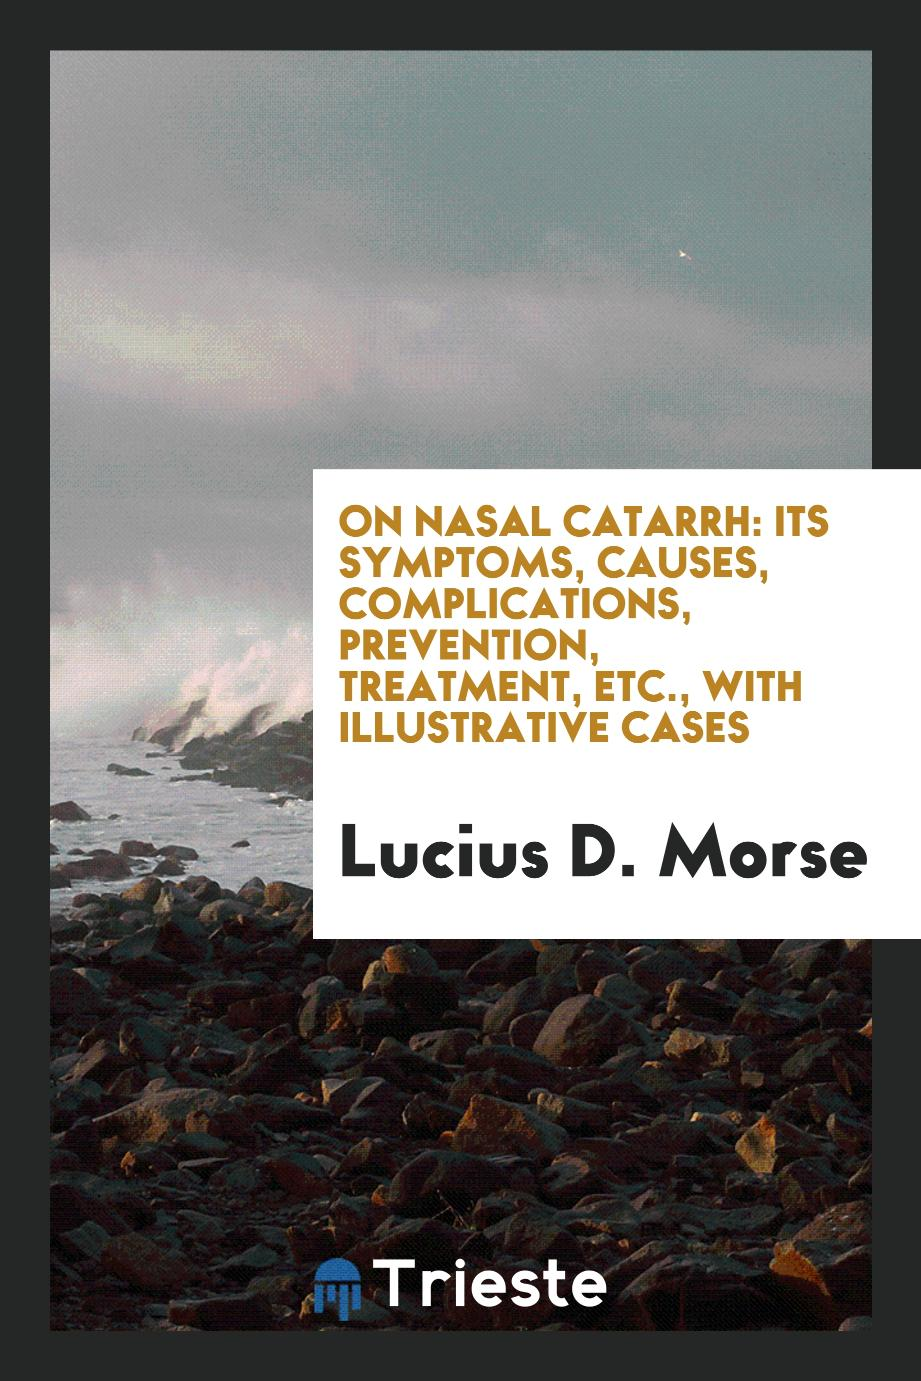 On Nasal Catarrh: Its Symptoms, Causes, Complications, Prevention, Treatment, Etc., with illustrative cases